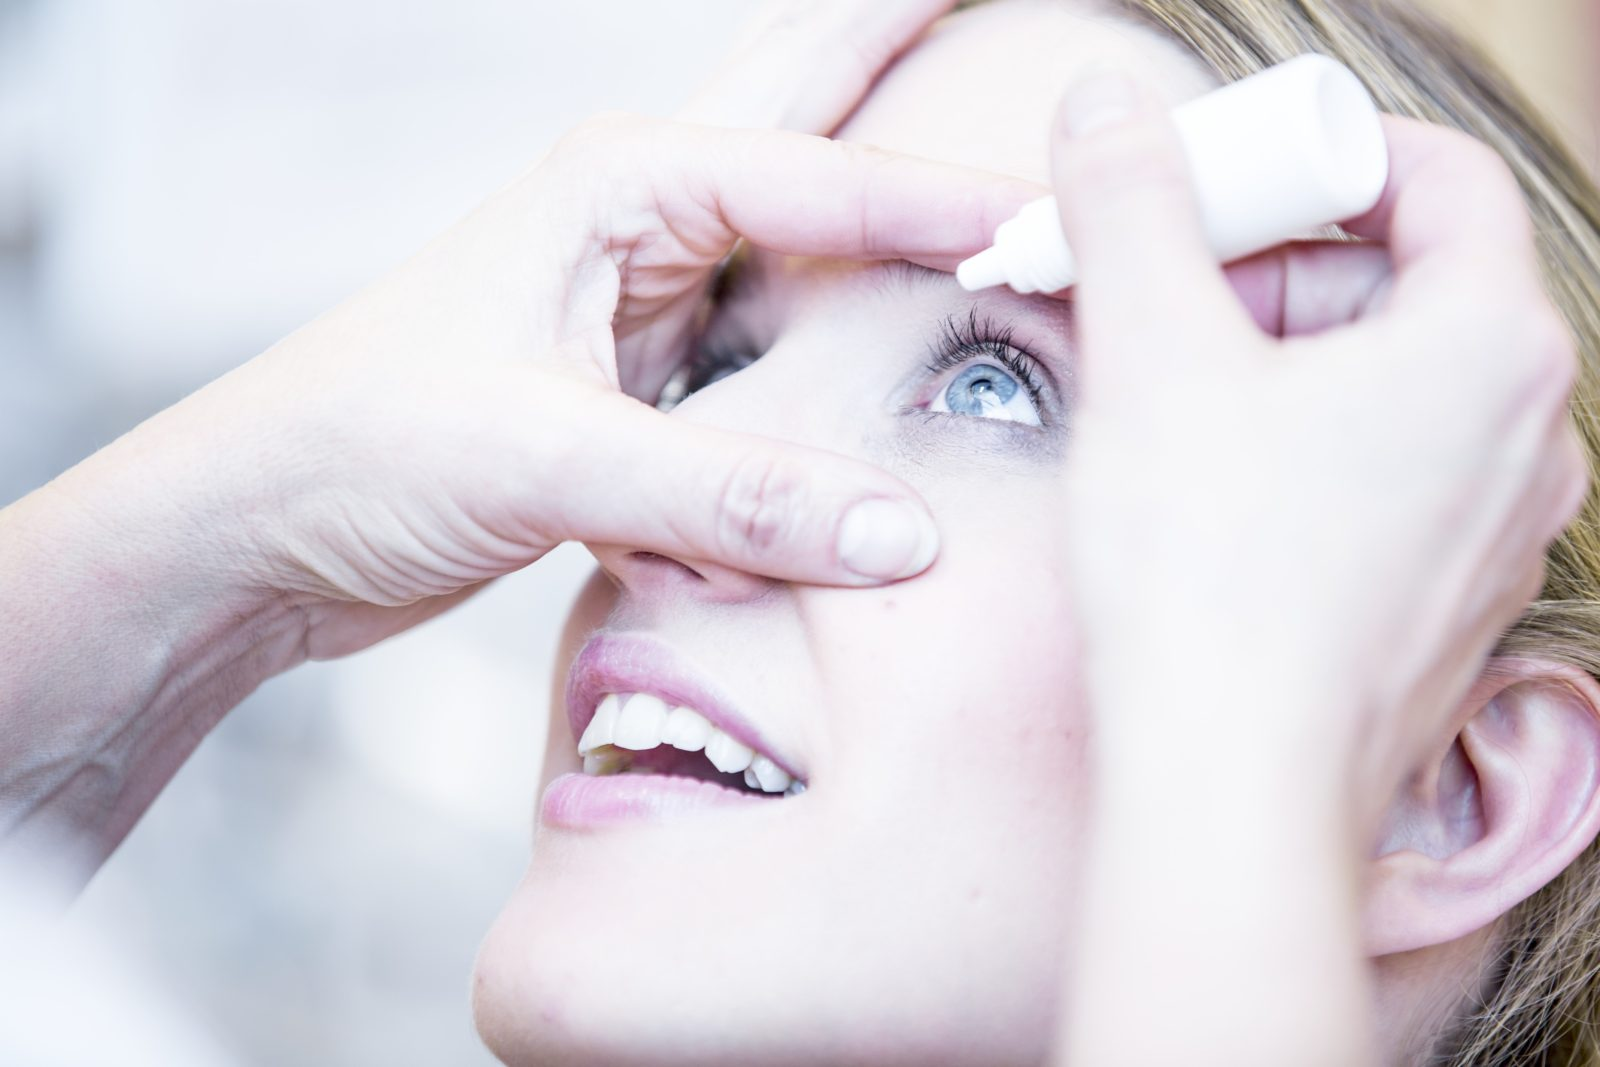 Close-up of person applying eye drops.